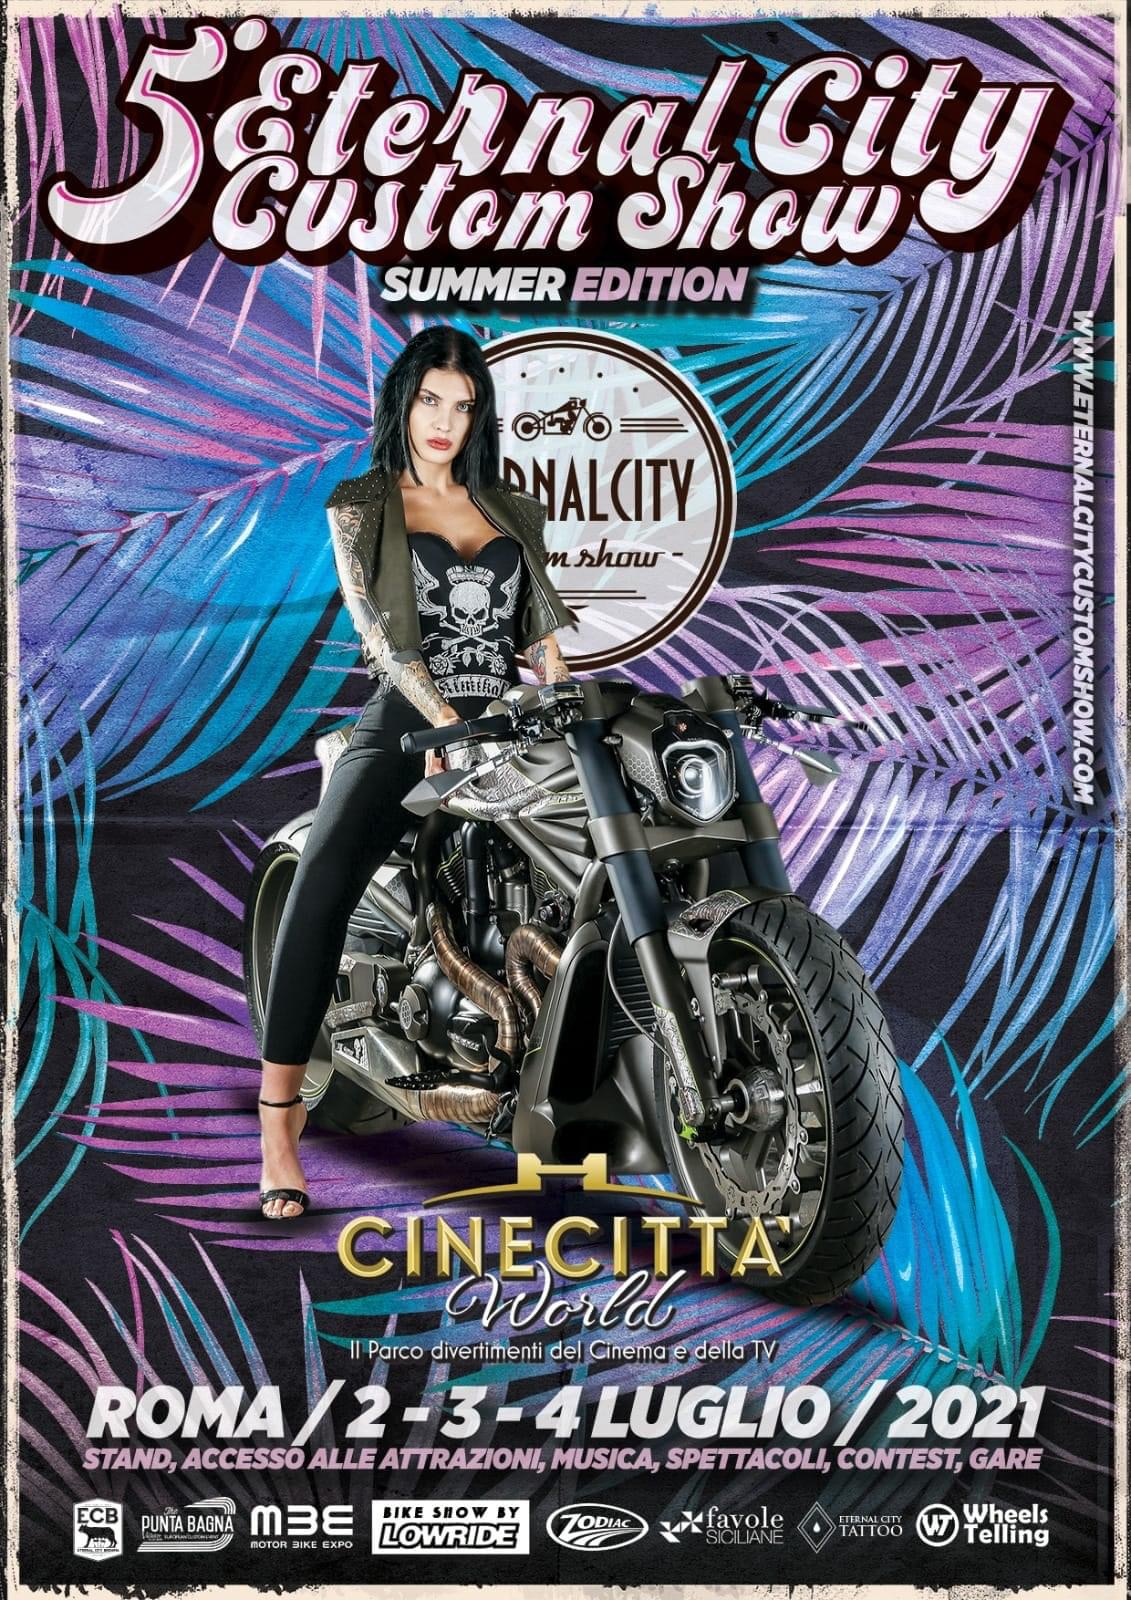 5° Eternal City Custom Show